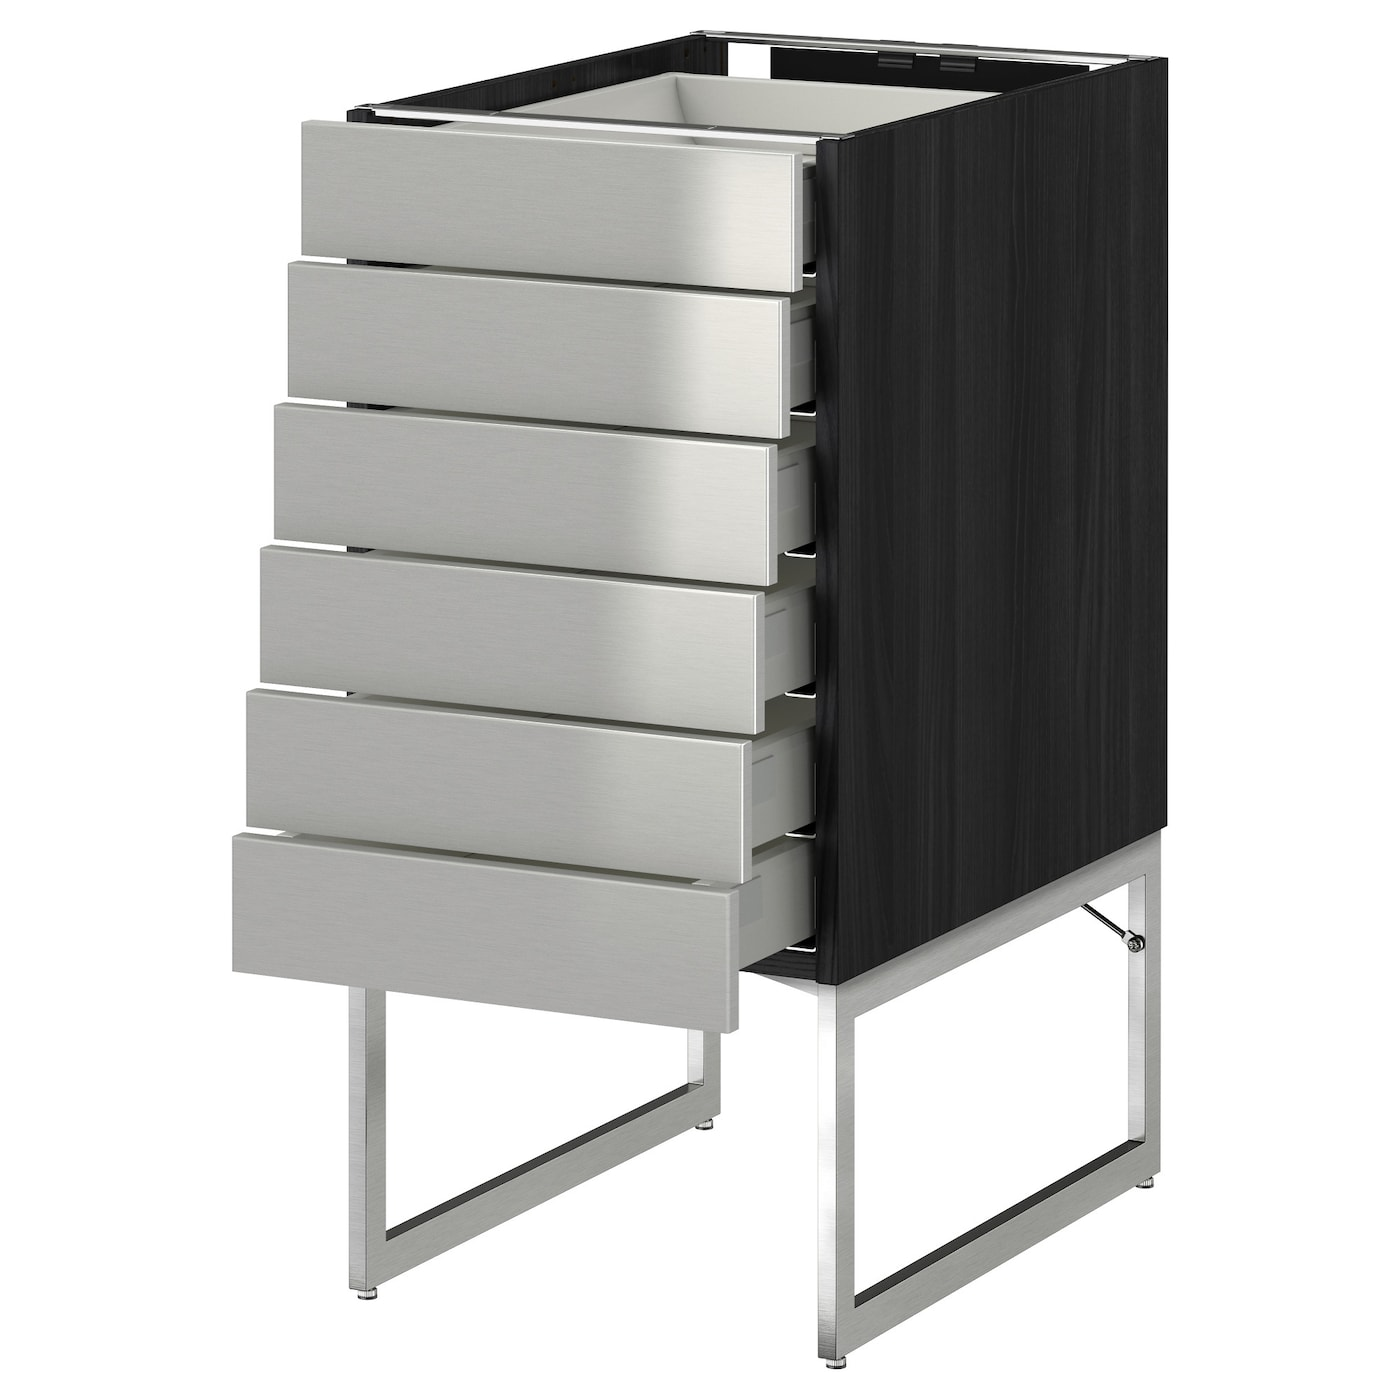 Metod Maximera Base Cabinet 6 Fronts 6 Low Drawers Black Grevsta Stainless Steel 40x60x60 Cm Ikea